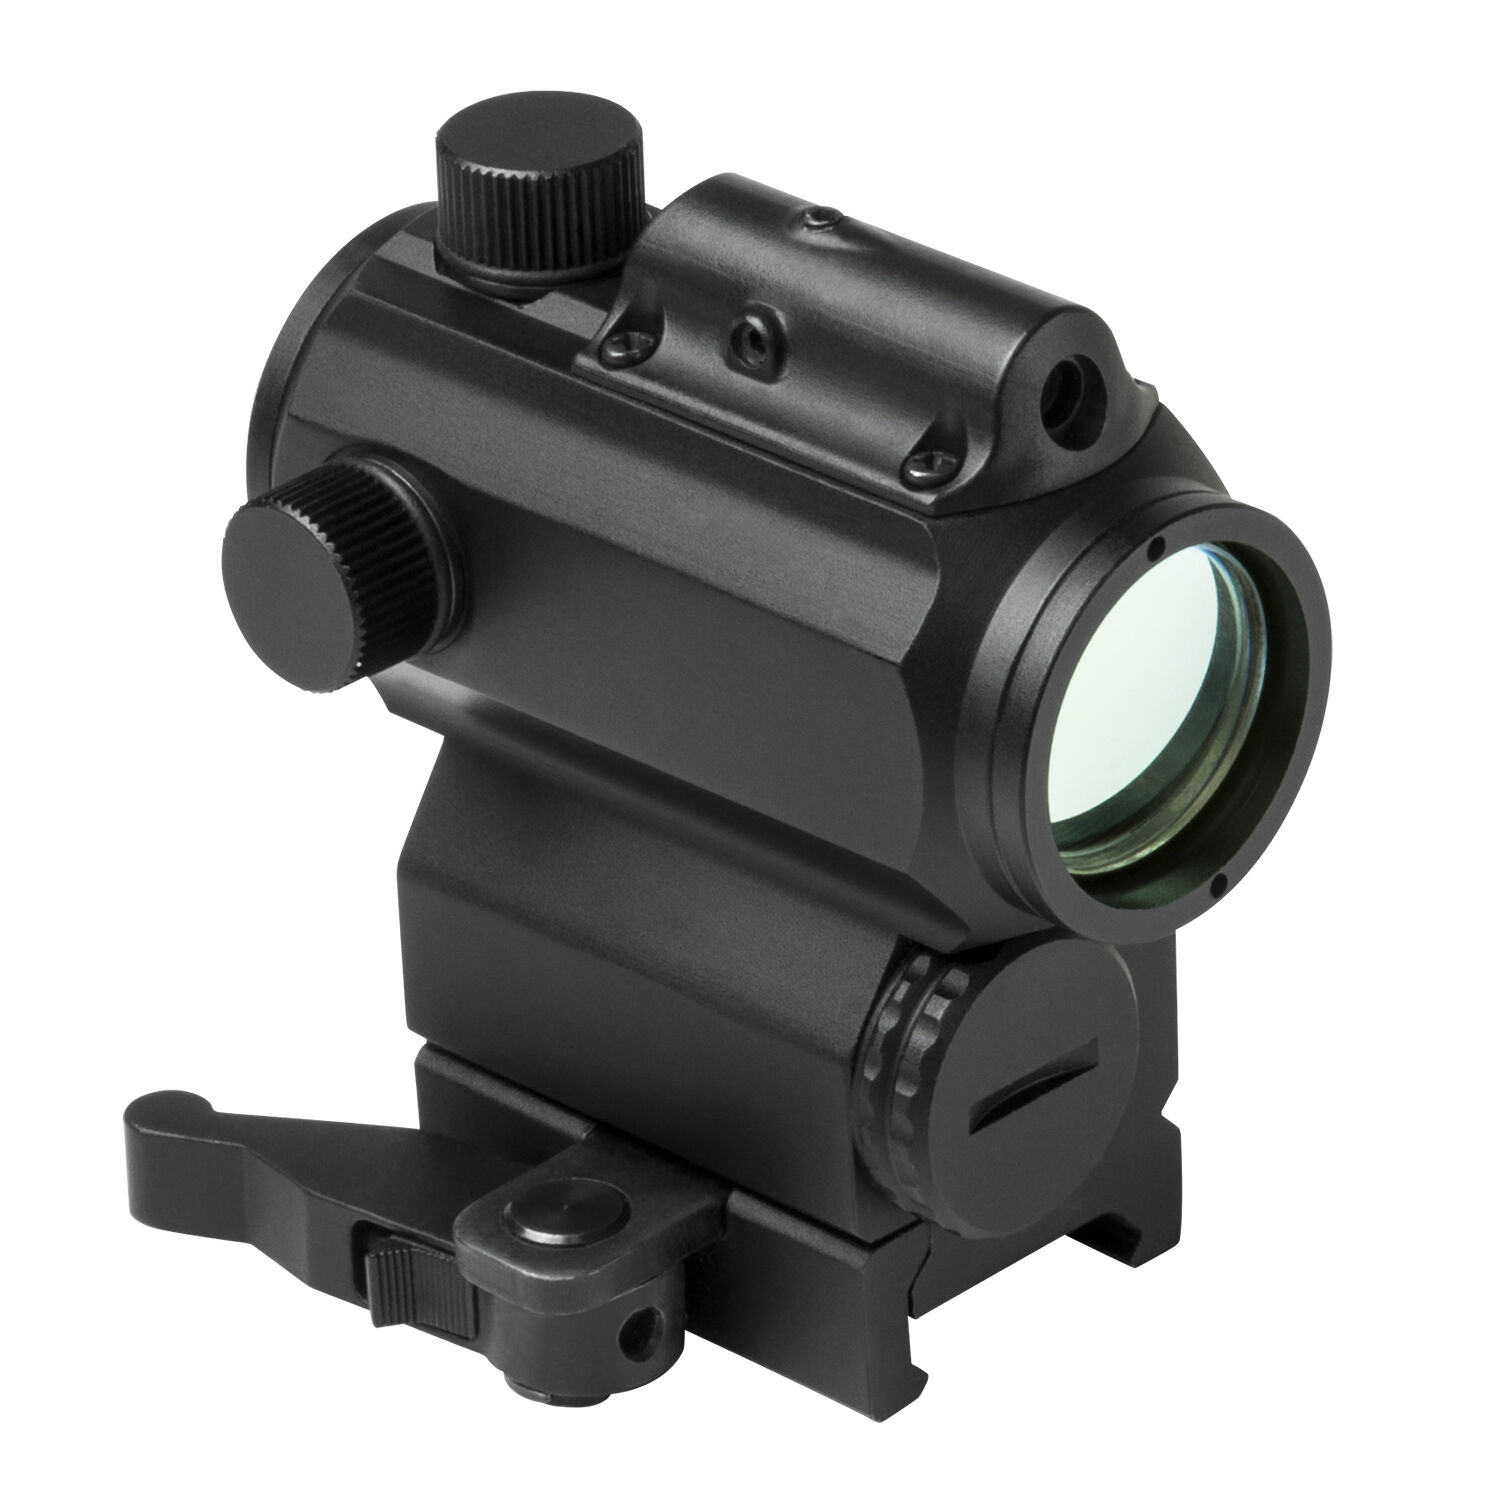 Ncstar VISM 3 MOA Micro Red & bluee Dot Sight with Green Laser Sight VDBRGLB